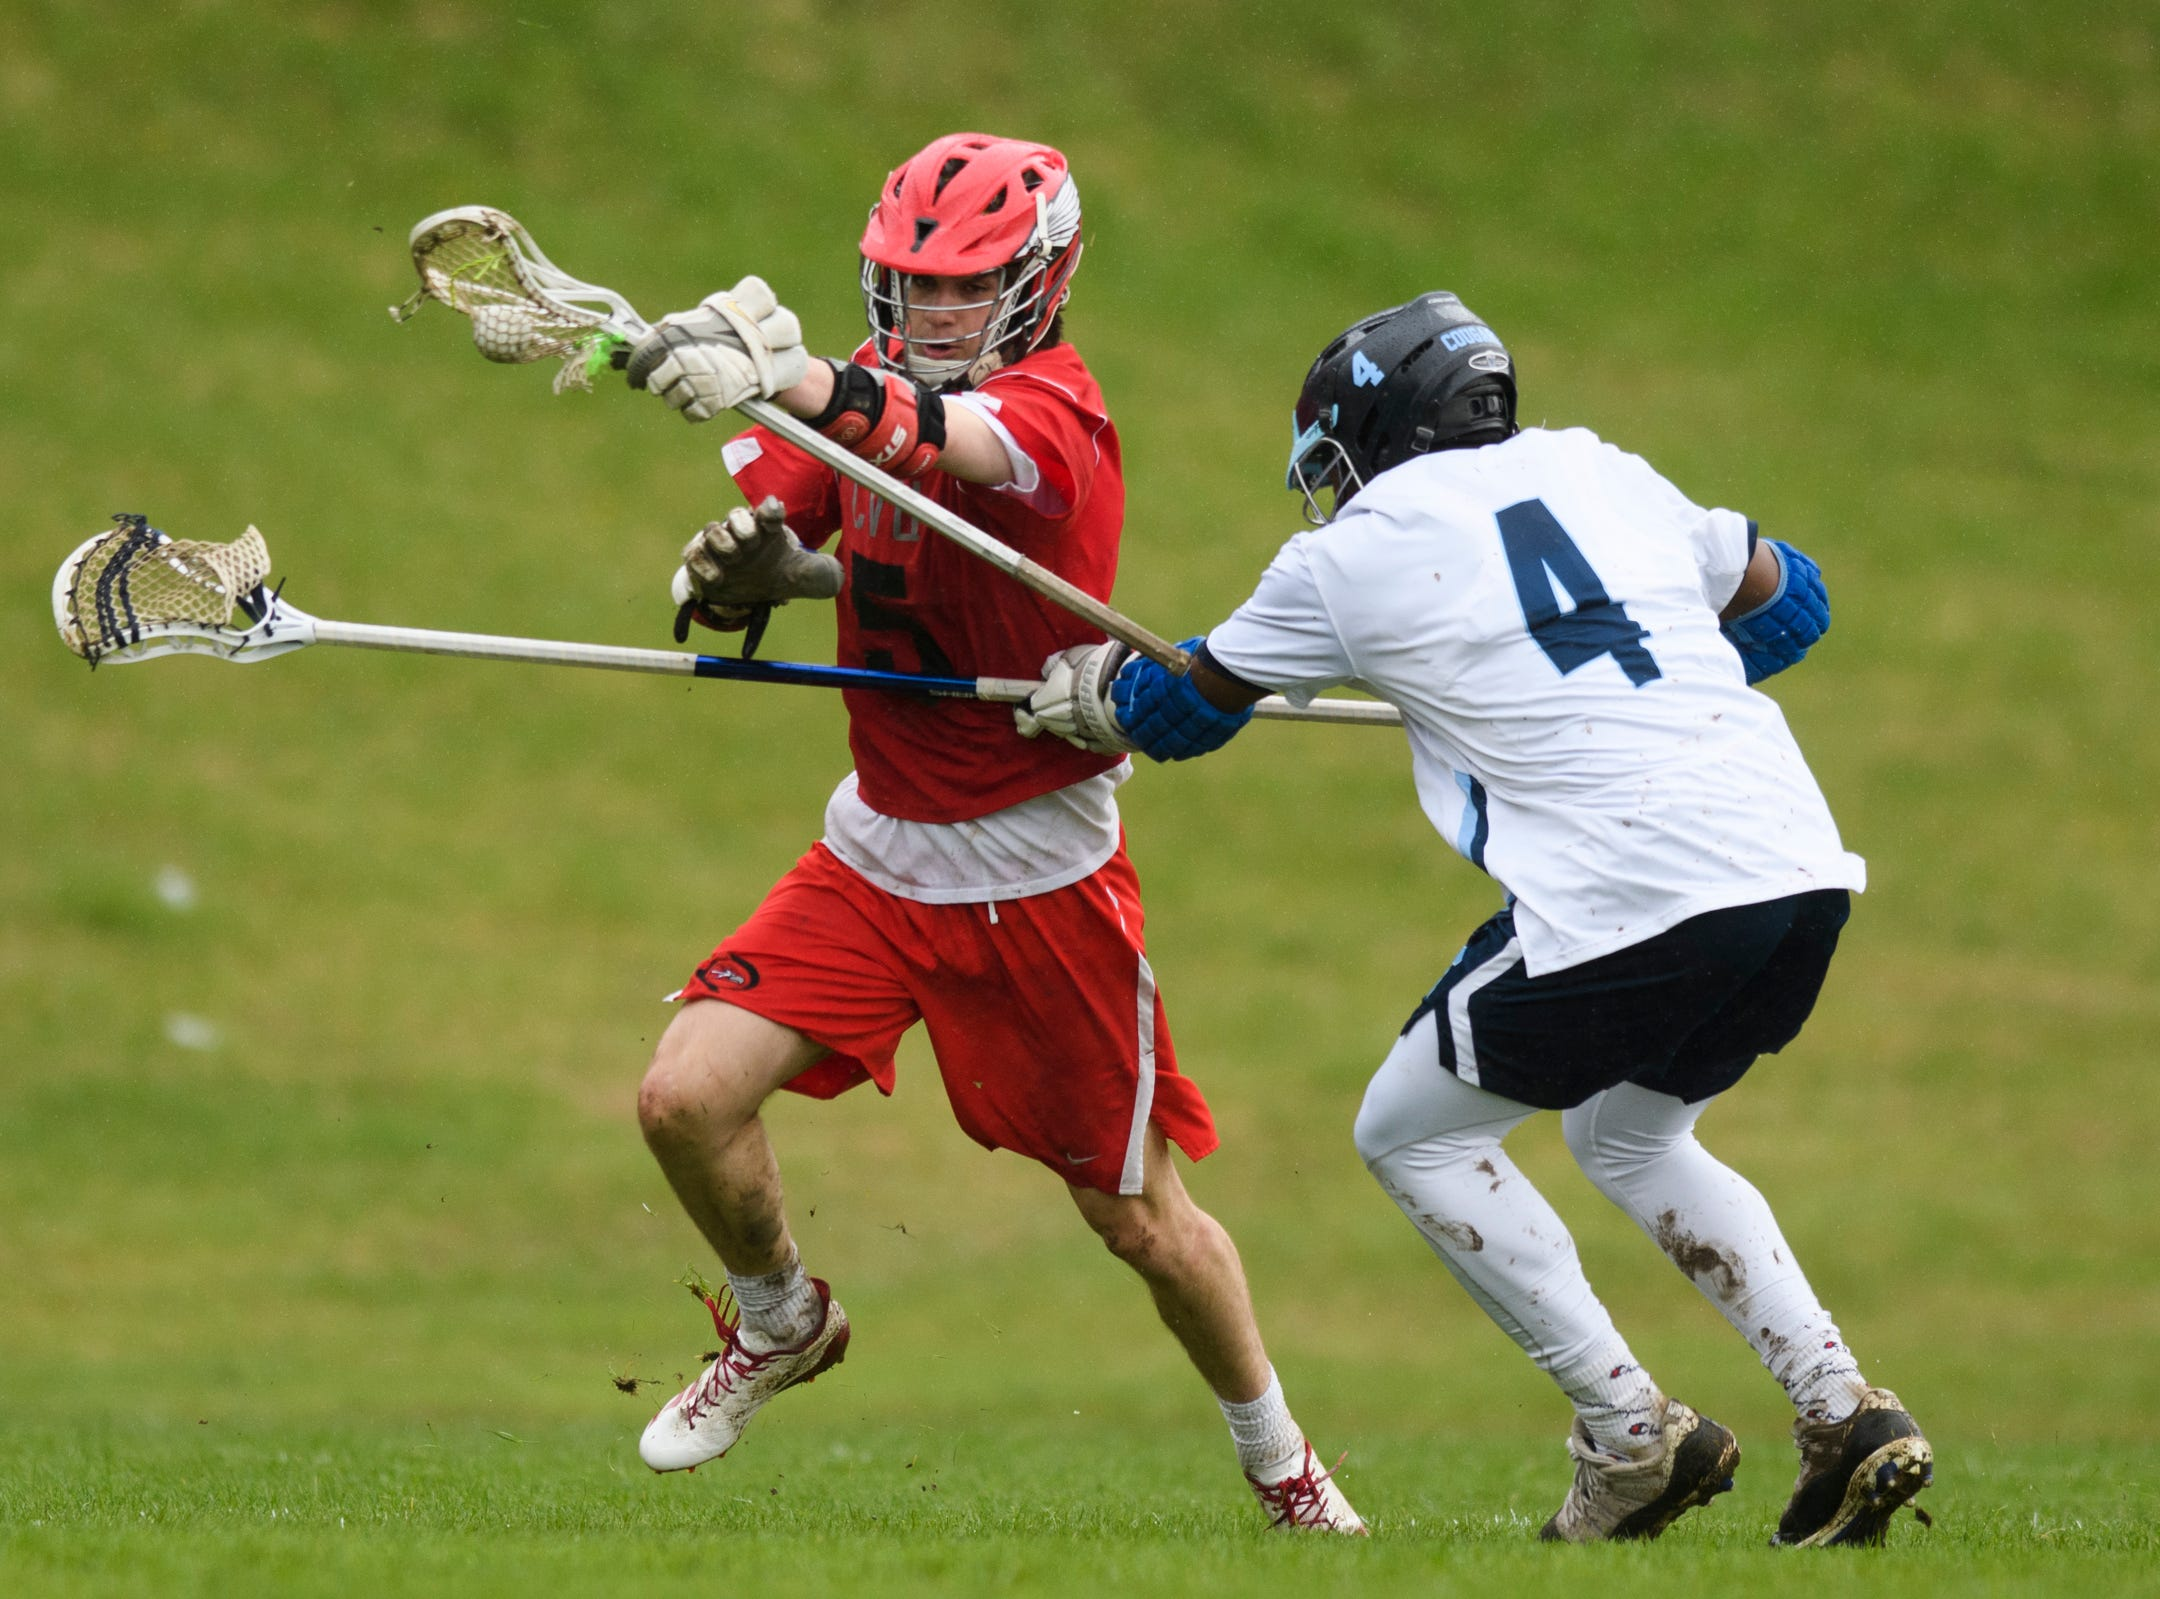 CVU's Jake Schaefer (5) tries to run past MMU's Jehric Hackney (4) with the ball during the boys lacrosse game between the Champlain Valley Union Redhawks and the Mount Mansfield Cougars at MMU High School on Tuesday afternoon May 14, 2019 in Jericho, Vermont.